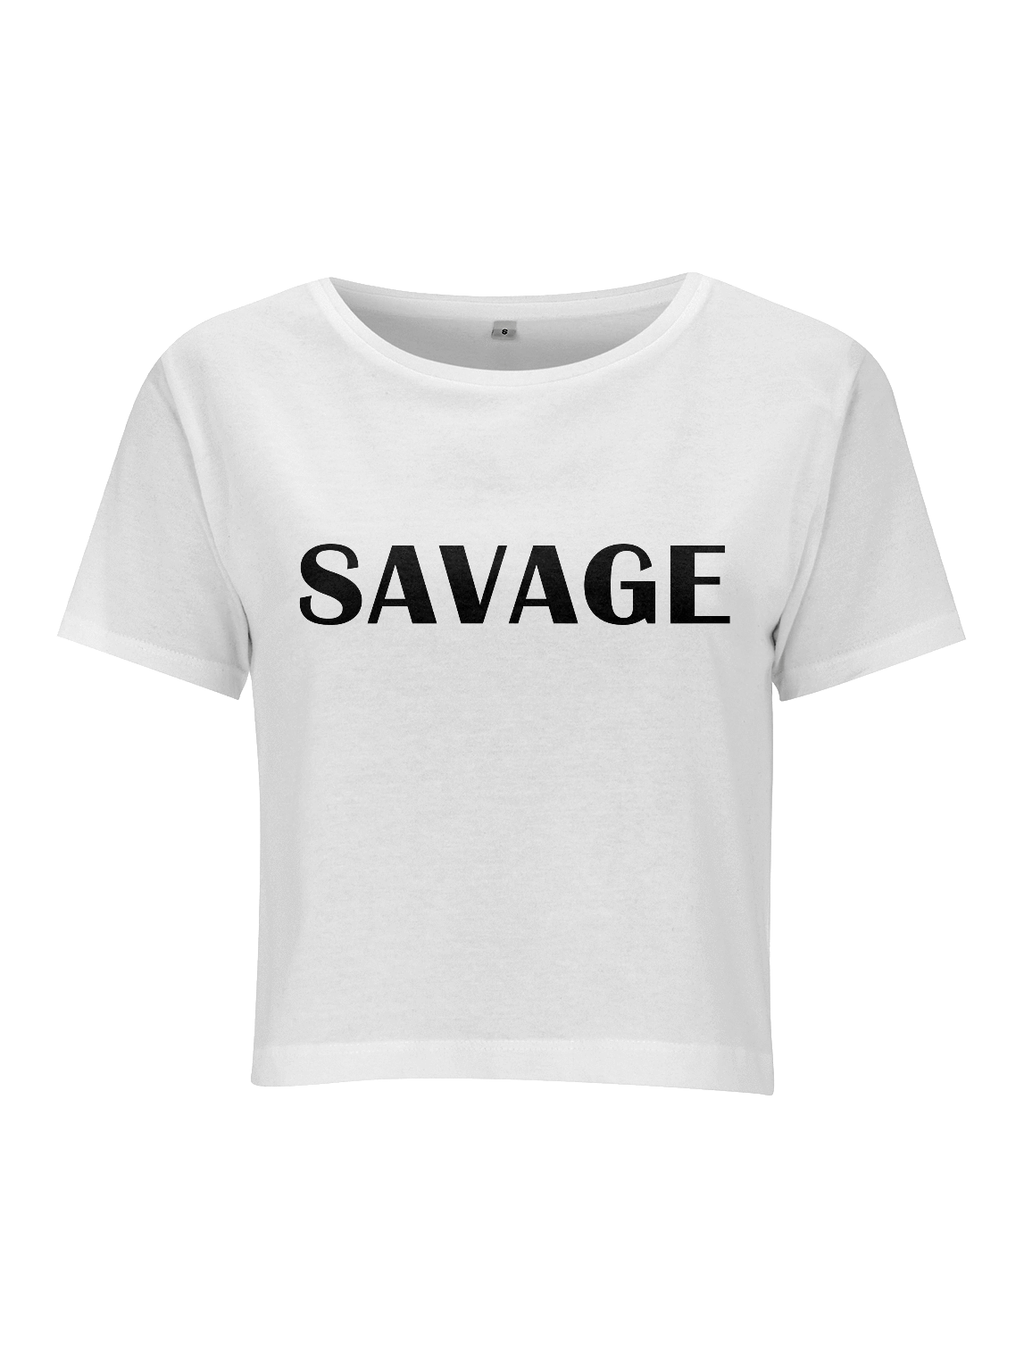 SAVAGE crop top in white